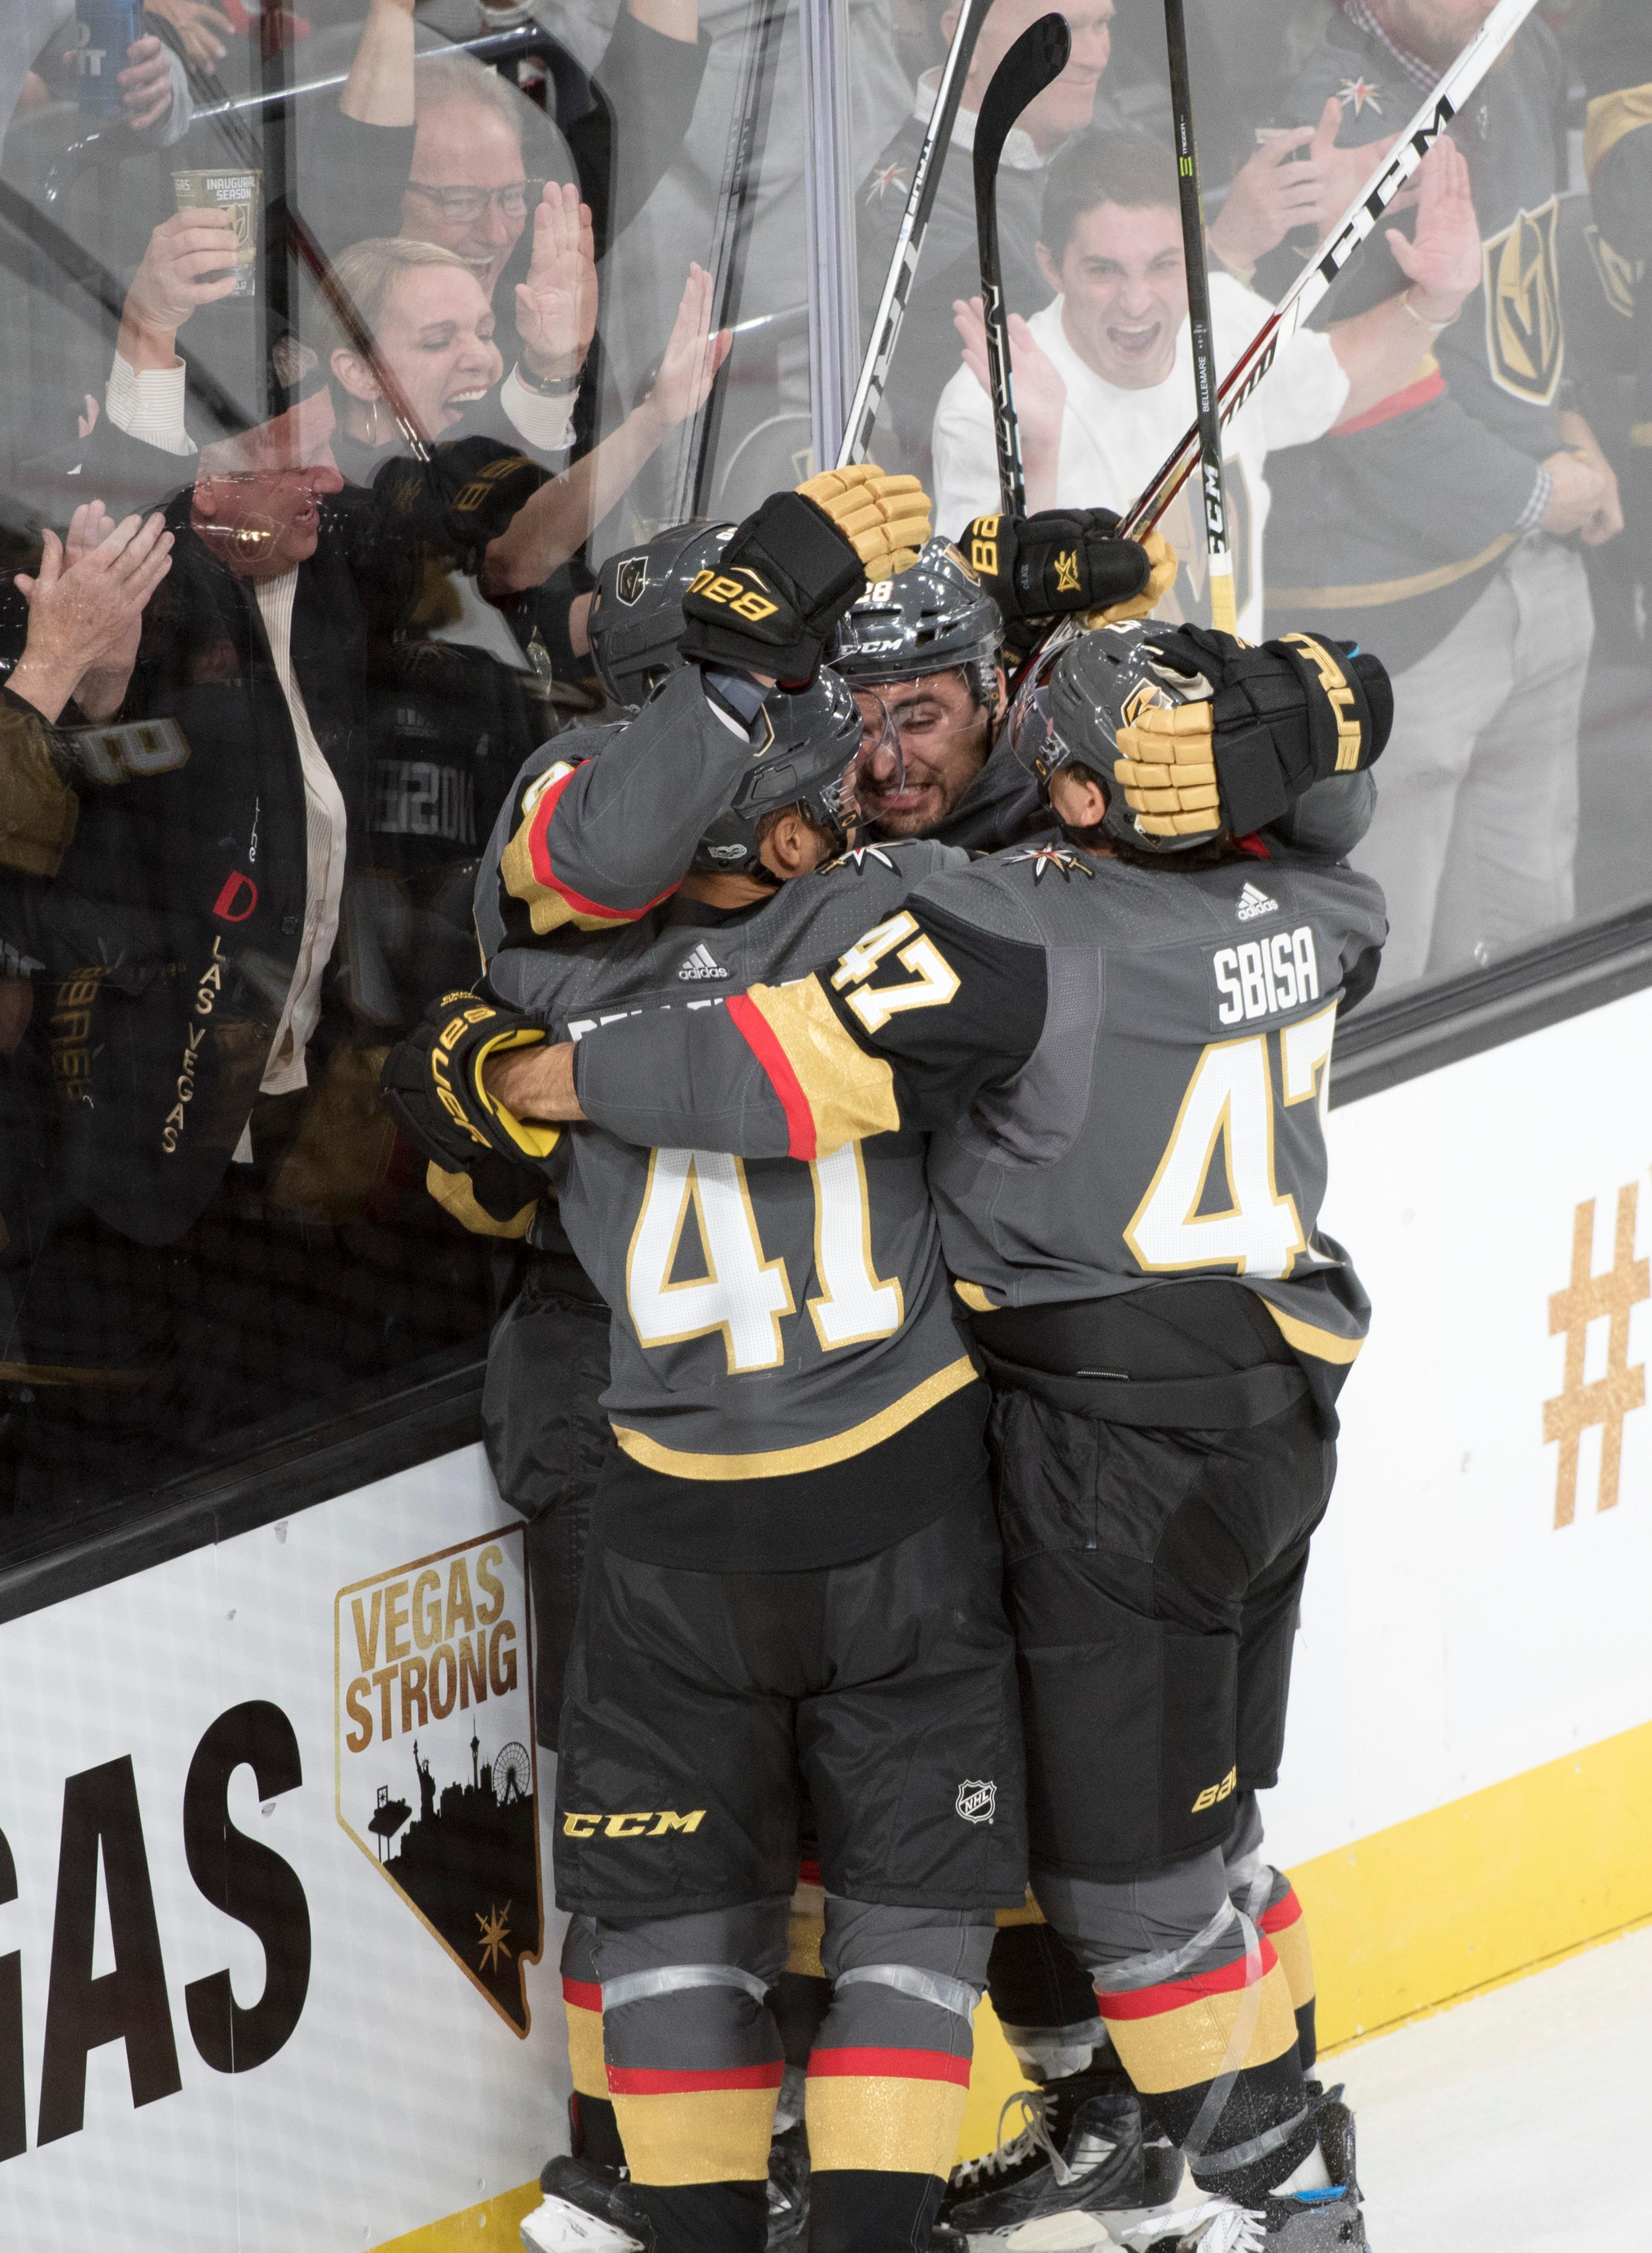 Vegas Golden Knights players celebrate their first home goal against the Arizona Coyotes during the Knights home opener Tuesday, Oct. 10, 2017, at the T-Mobile Arena. The Knights won 5-2 to extend their winning streak to 3-0. CREDIT: Sam Morris/Las Vegas News Bureau